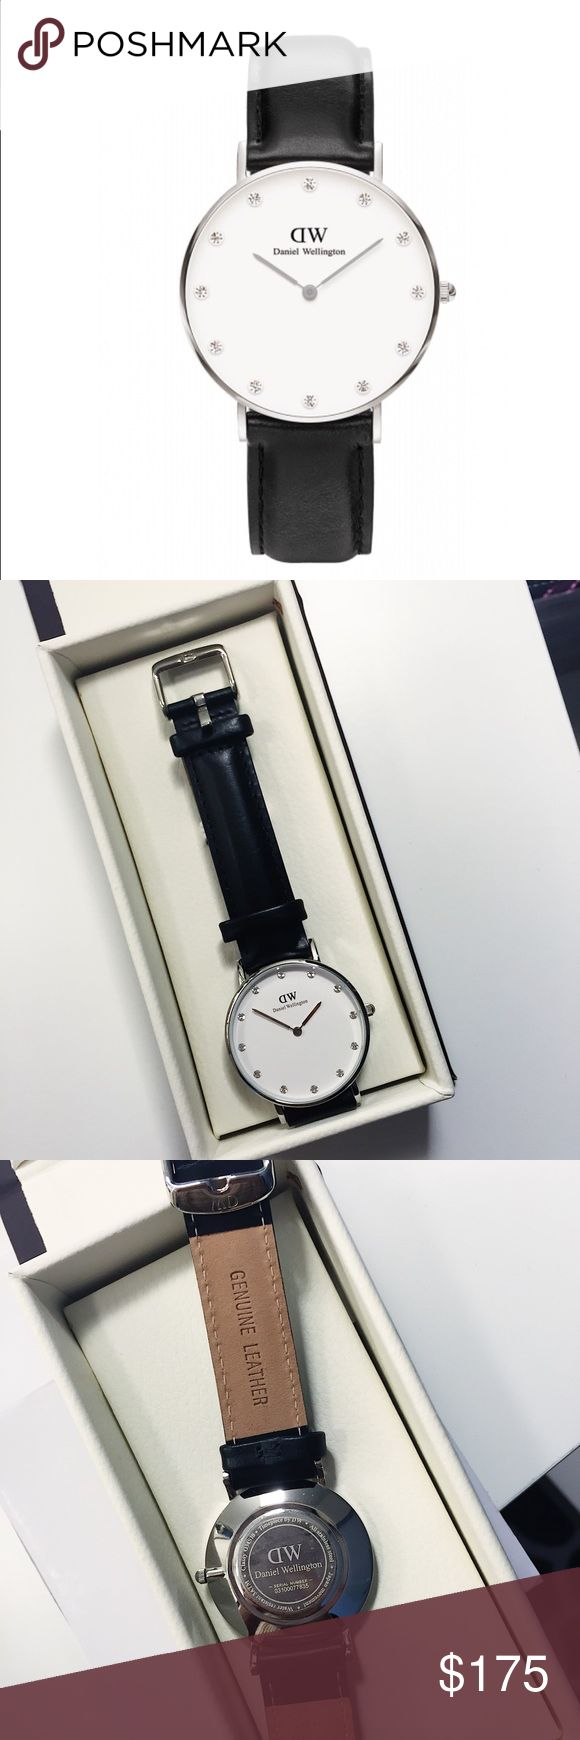 Daniel Wellington Sheffield 34mm watch Authentic  Size: 34mm  Strap width: 17mm Strap: leather strap  Like new- only worn once Original price: $199 USD Daniel Wellington Accessories Watches